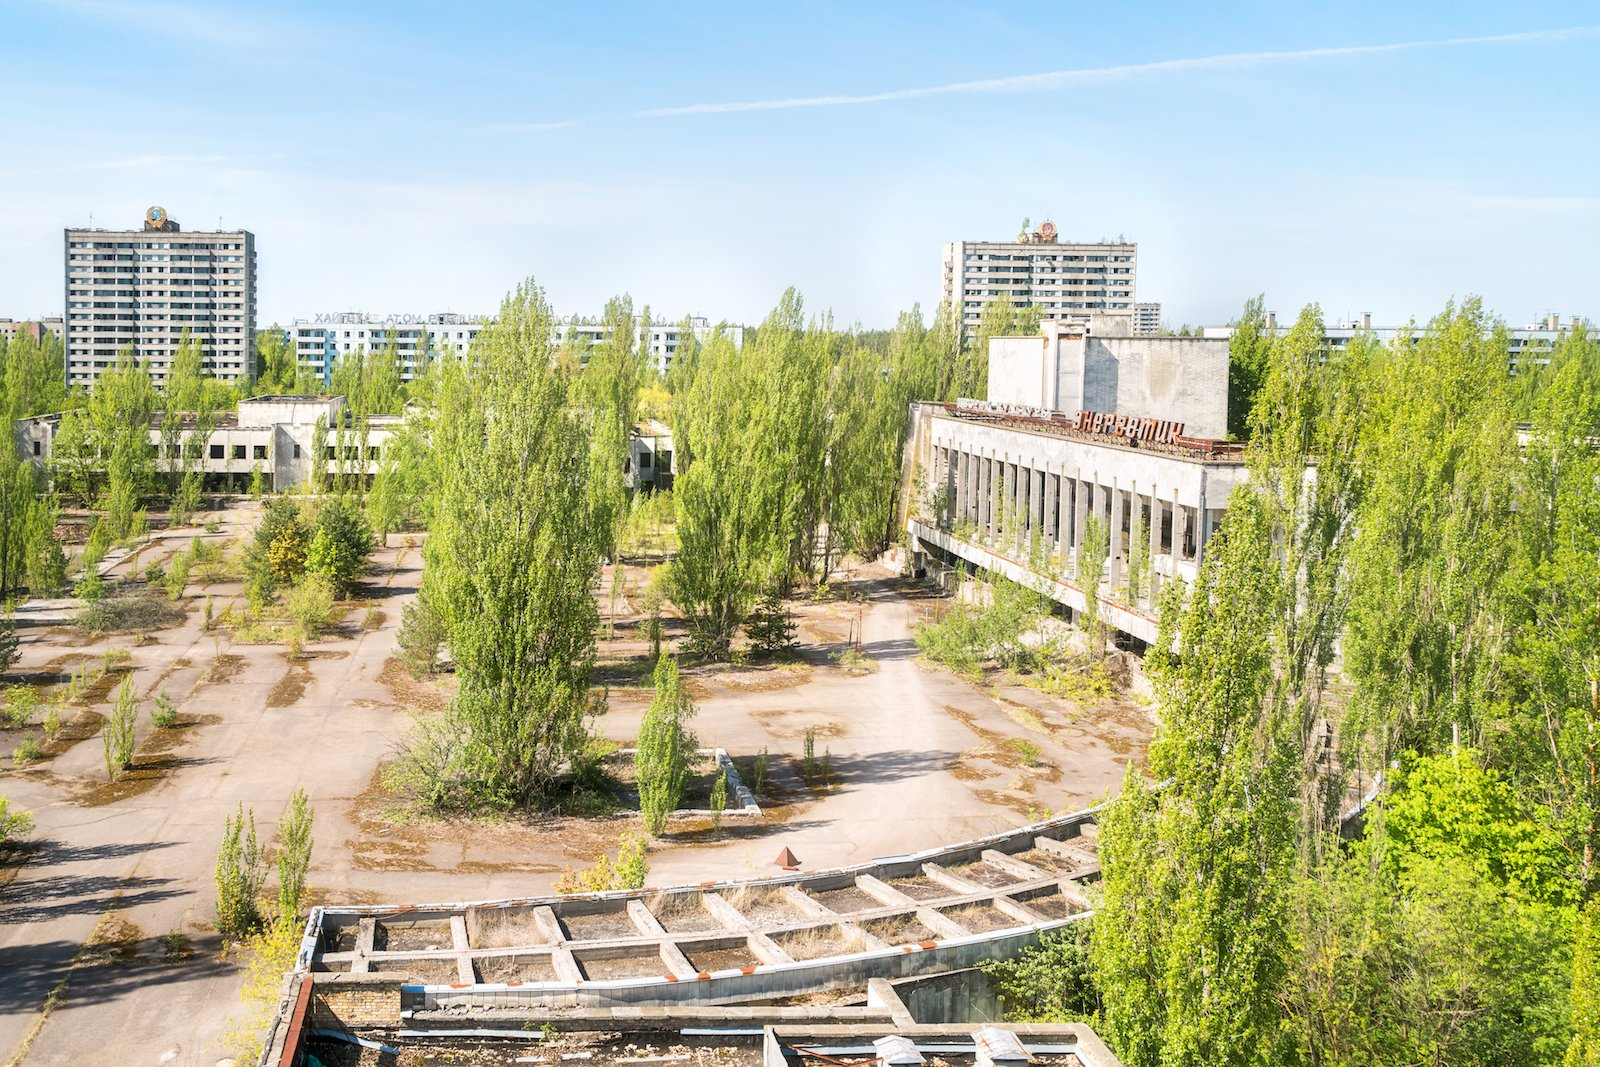 Technology Hydro moreover Crao And Brao further Page89 also Visit Abandoned Radioactive City Pripyat likewise What Is Bleve. on pressure vessel